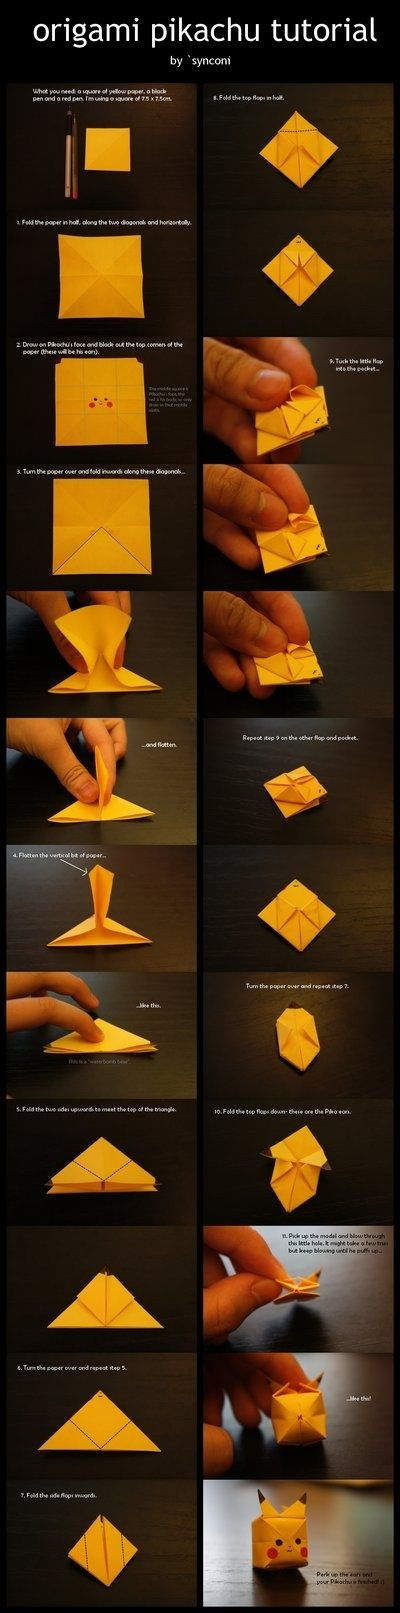 Pikachu origami! I have no origami skills whatsoever, but this looks too cute I…